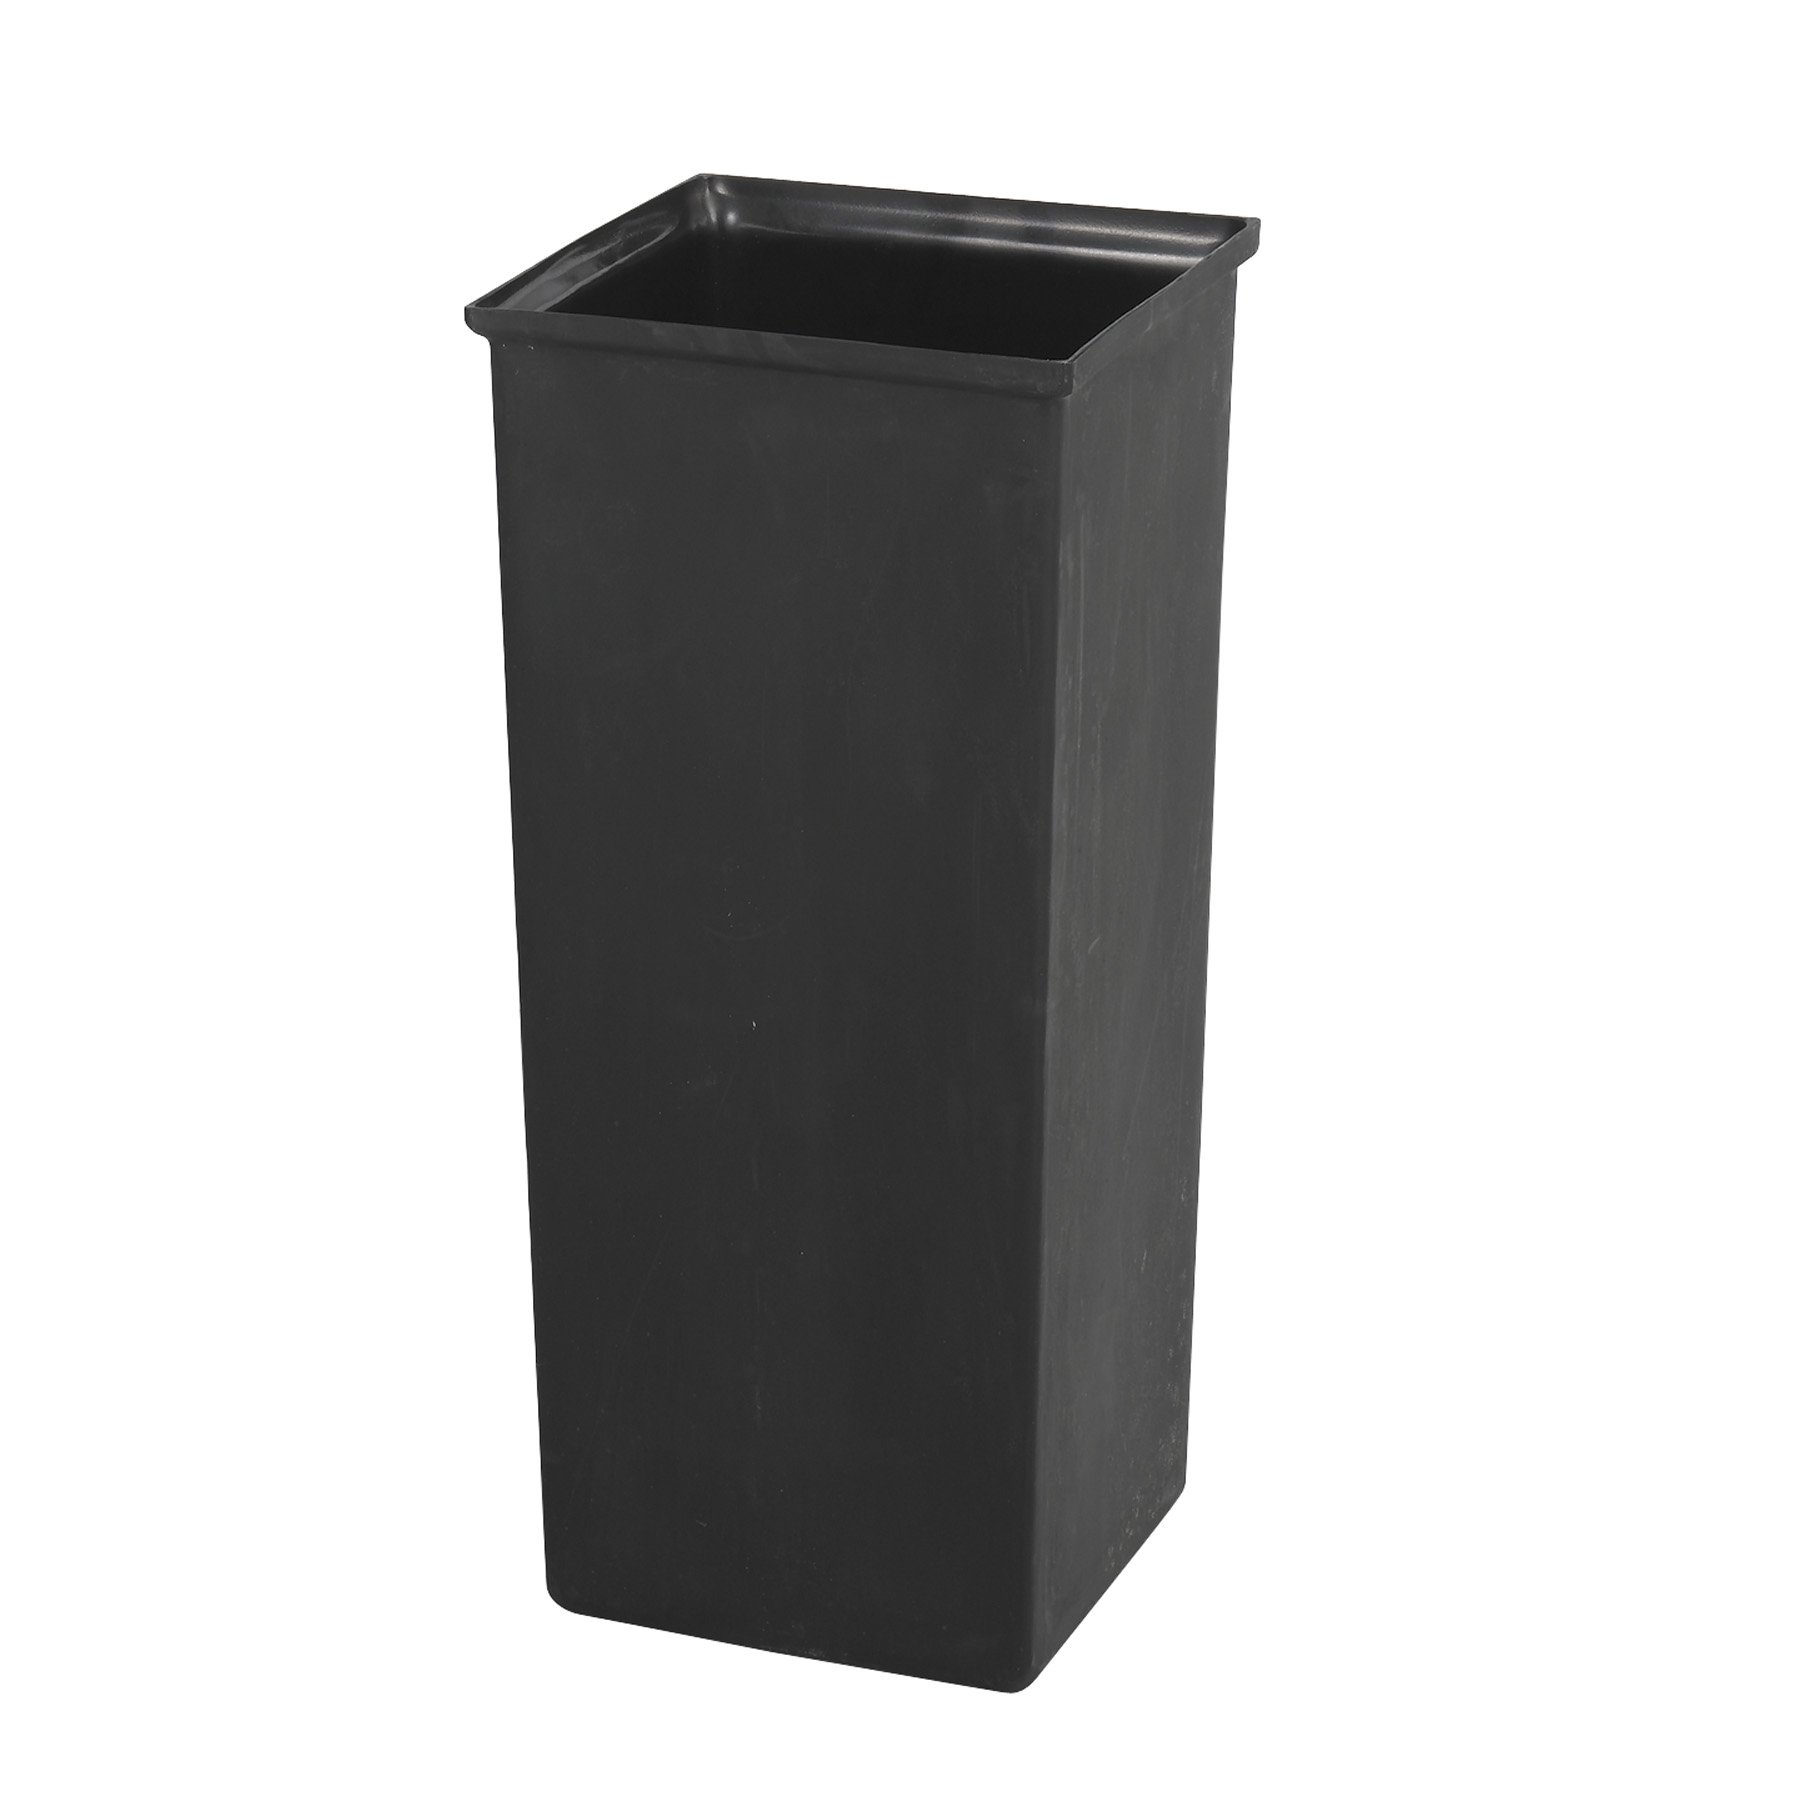 Safco Products 9668 Plastic Liner for 21-Gallon Trash Cans, sold separately, Black